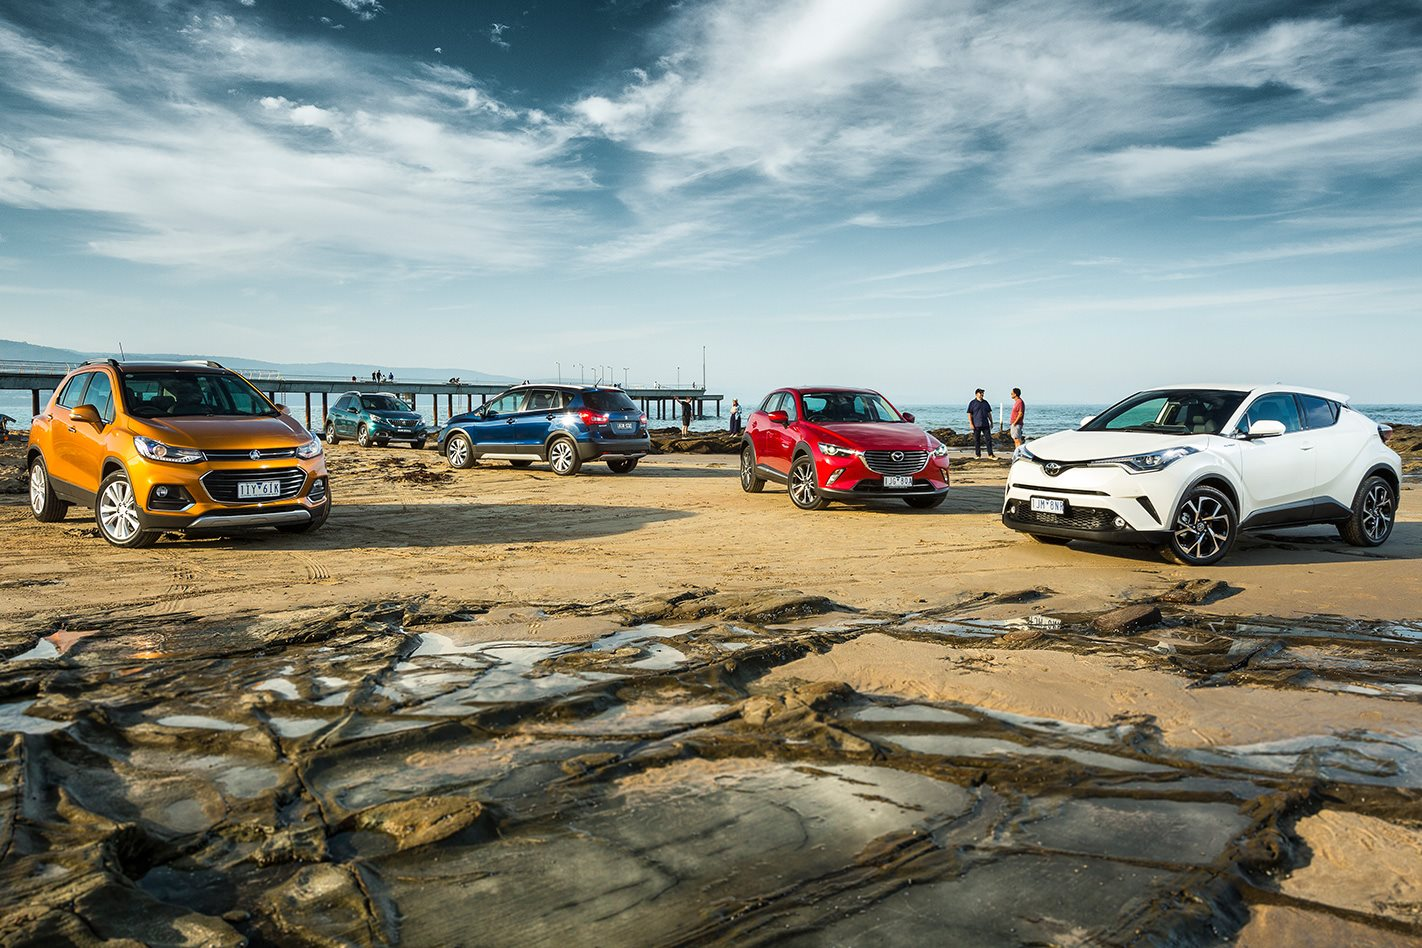 Toyota C-HR vs Peugeot 2008 vs Suzuki S-Cross vs Mazda CX-3 vs Holden Trax  - SUV Shootout